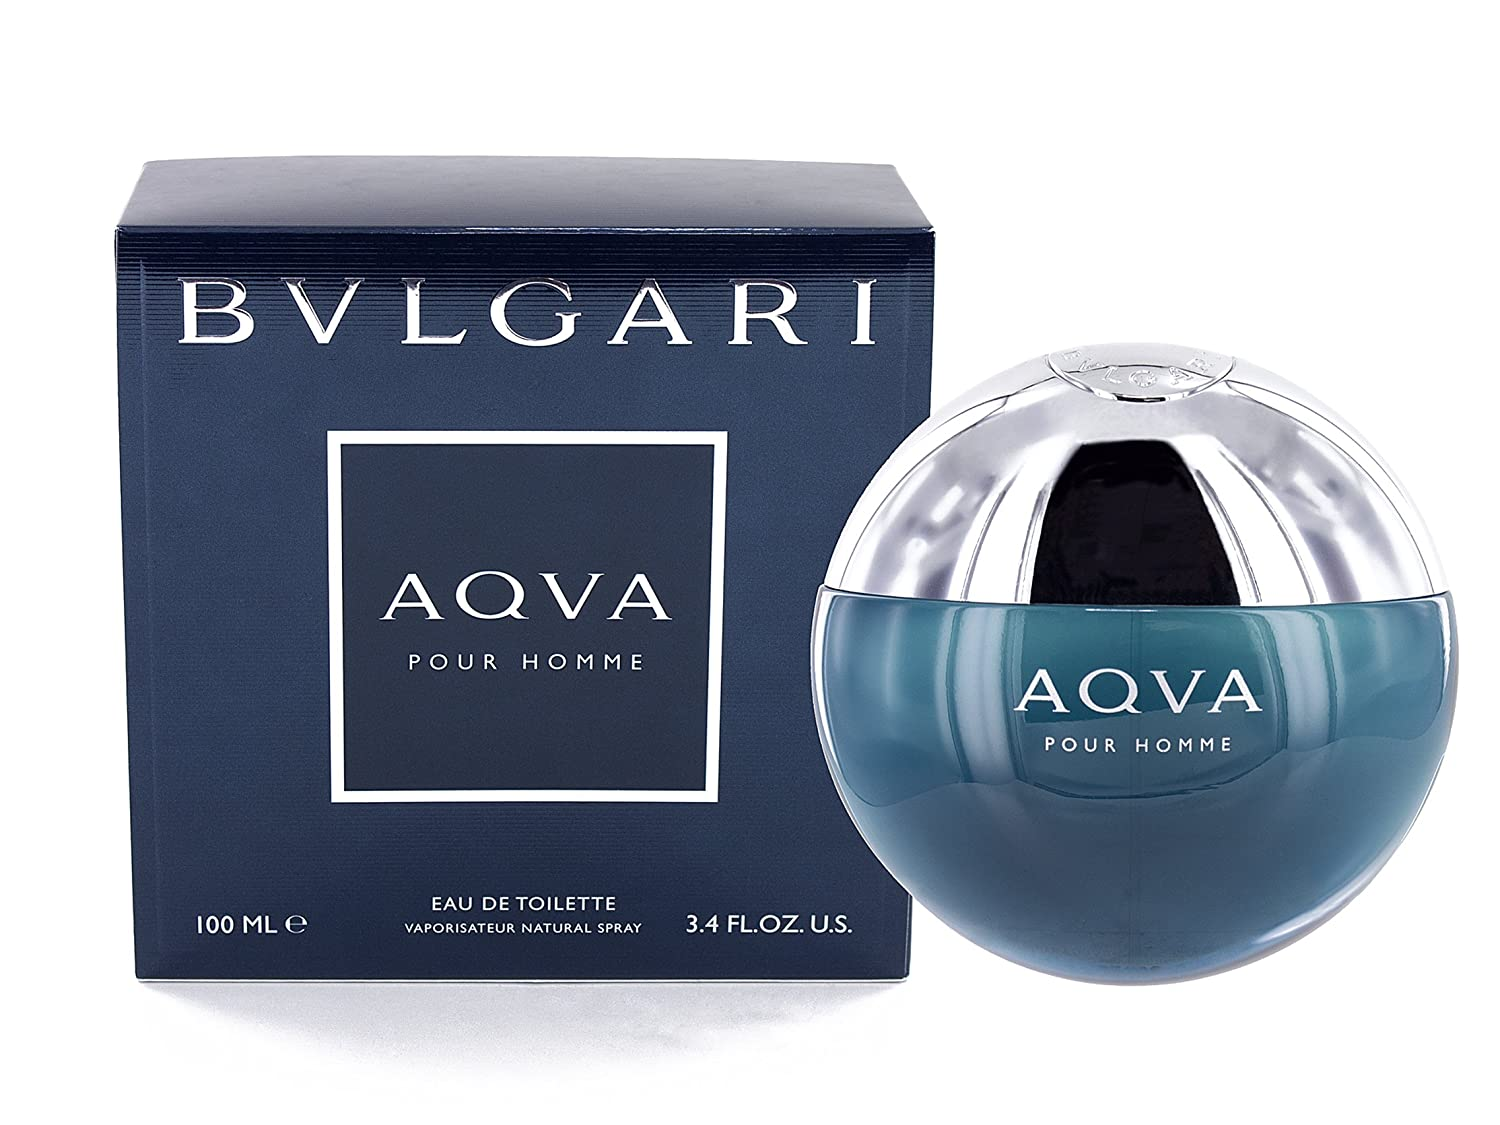 Bvlgari Aqva Eau De Toilette Spray for Men, 5 Ounce 0783320911569 40494